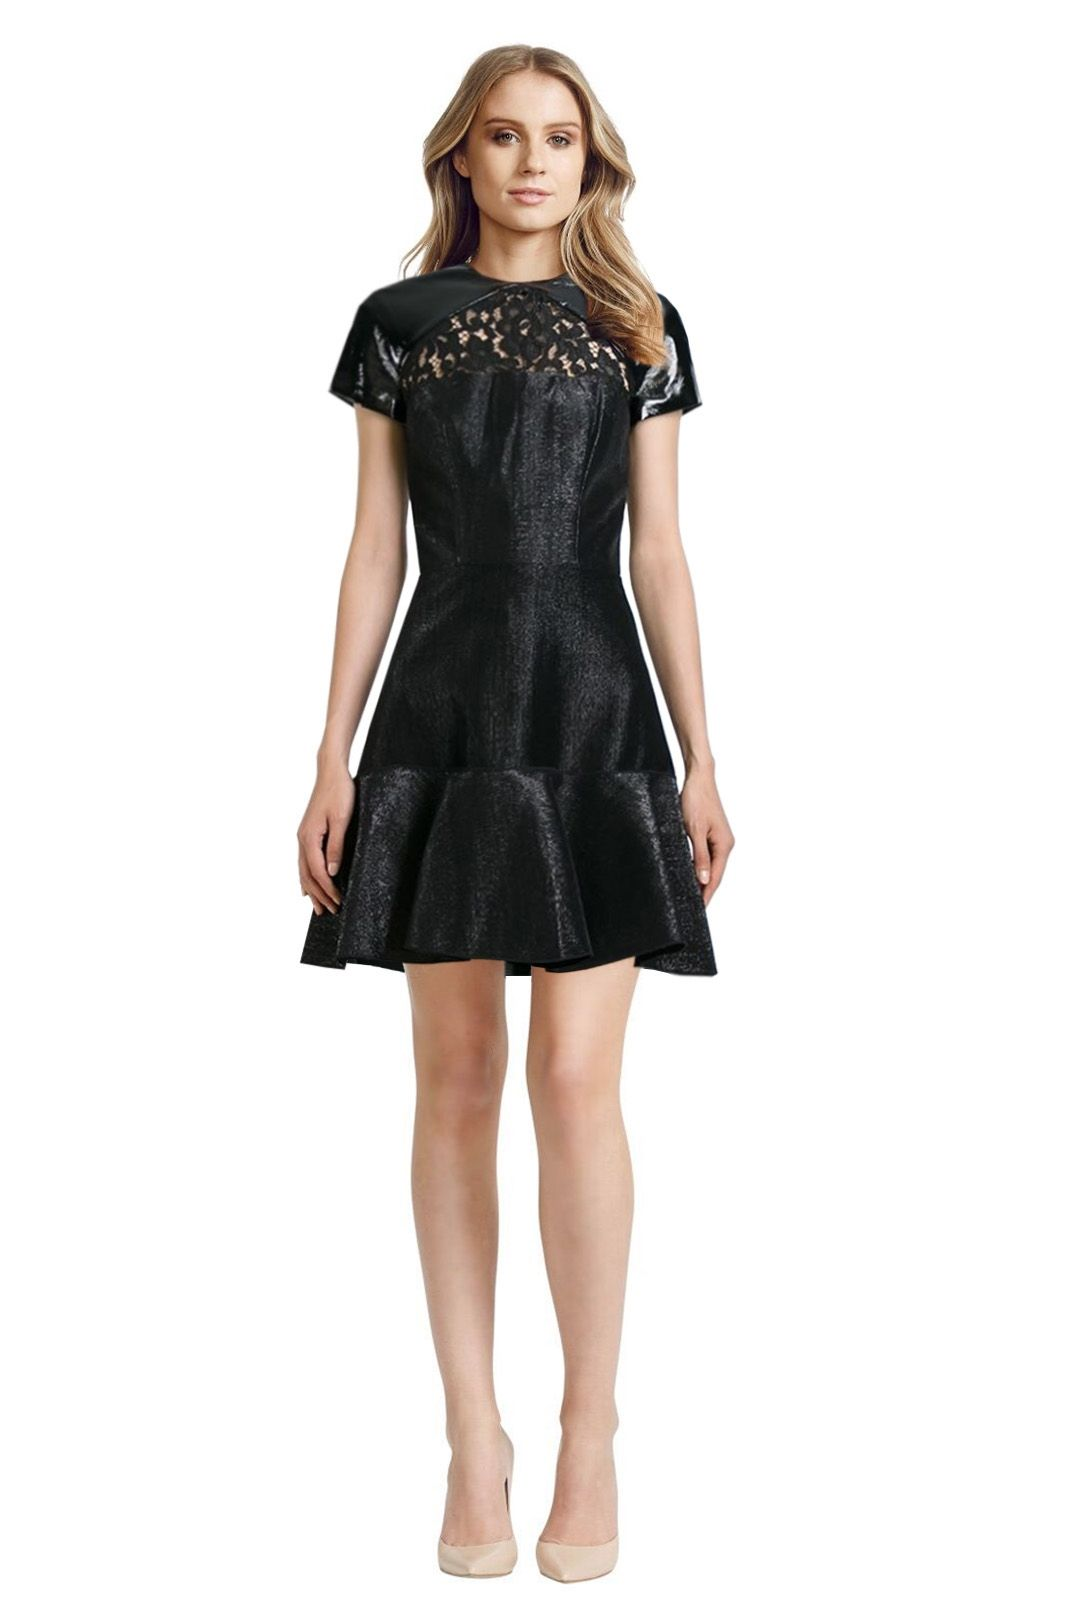 Alex Perry - Pascale Dress - Black - Front